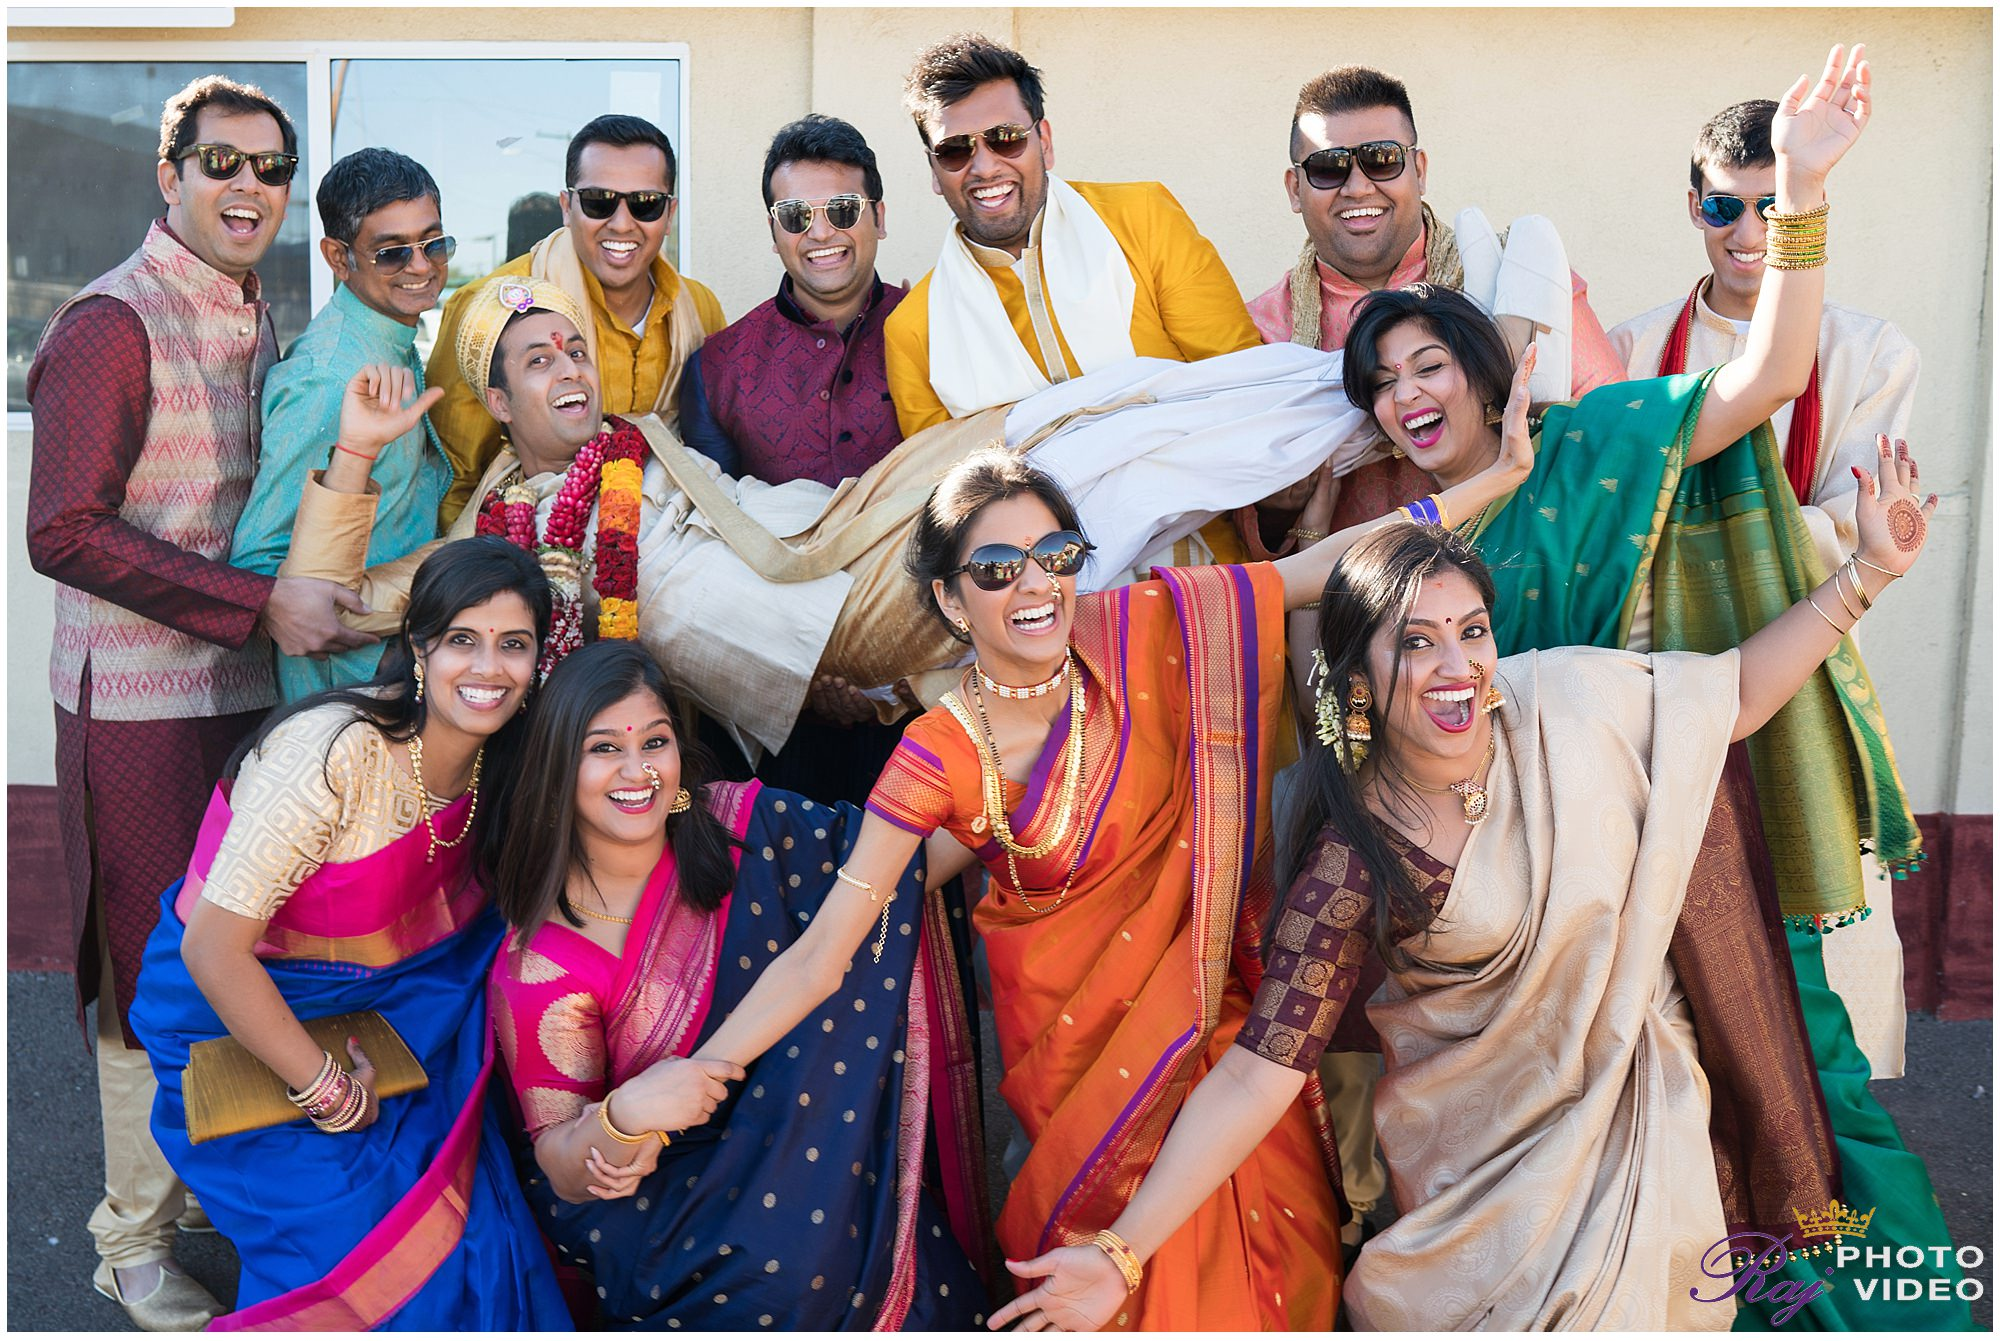 Sri_Venkata_Krishna_Kshetra_Temple_Tempe_Arizona_Indian_Wedding_Sapna_Shyam-5.jpg